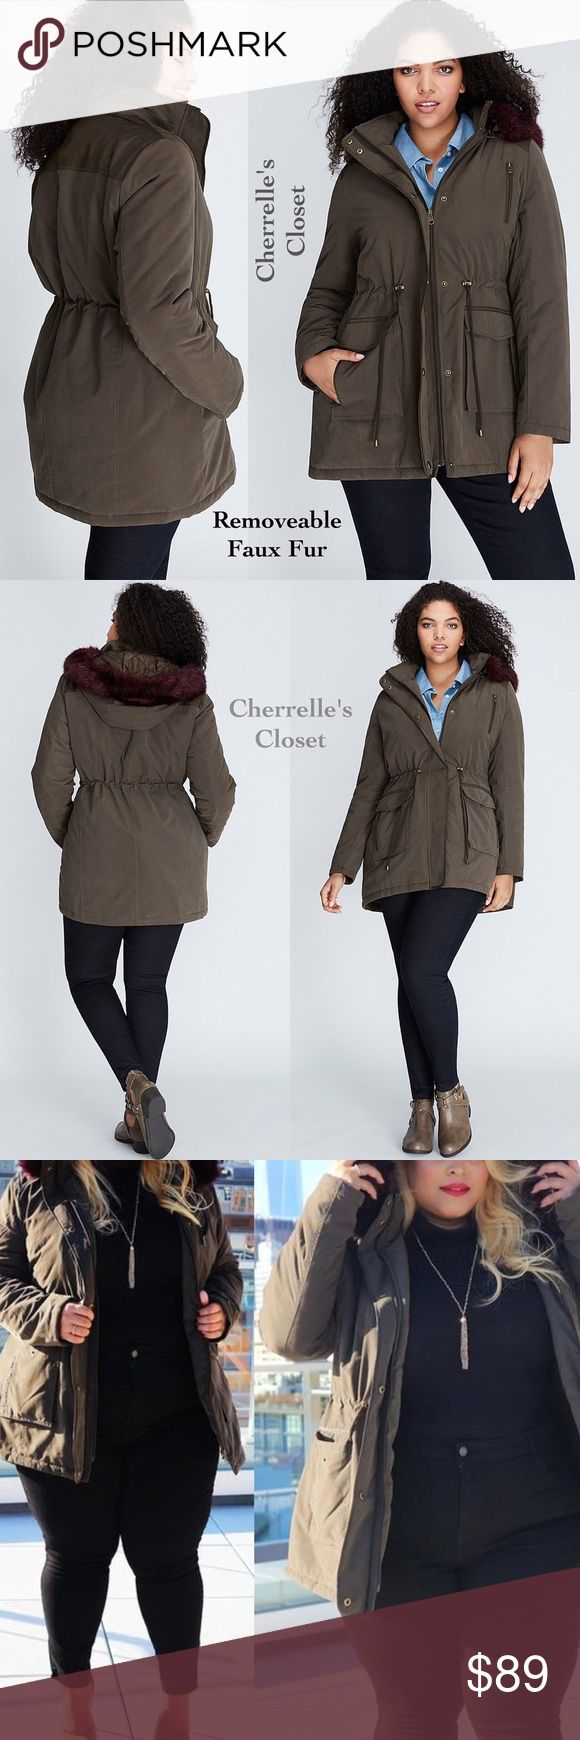 Lane Bryant Faux Fur Trimmed Parka Coat Plus Size Up for Sale is a Lane Bryant Faux Fur Trimmed Parka Coat Brand New With Tags Retails For $179.99 Plus Size 22/24 3X  Ready for its close-up: the fur-trimmed parka (and that pop of color). Detachable hood with faux fur (Unbutton Faux fur and/or Unzip hood). Quilted Lining. Zip and snap button front closure. Drawstring waist with toggles. Five Pockets  Nylon/Lycra Lane Bryant Jackets & Coats